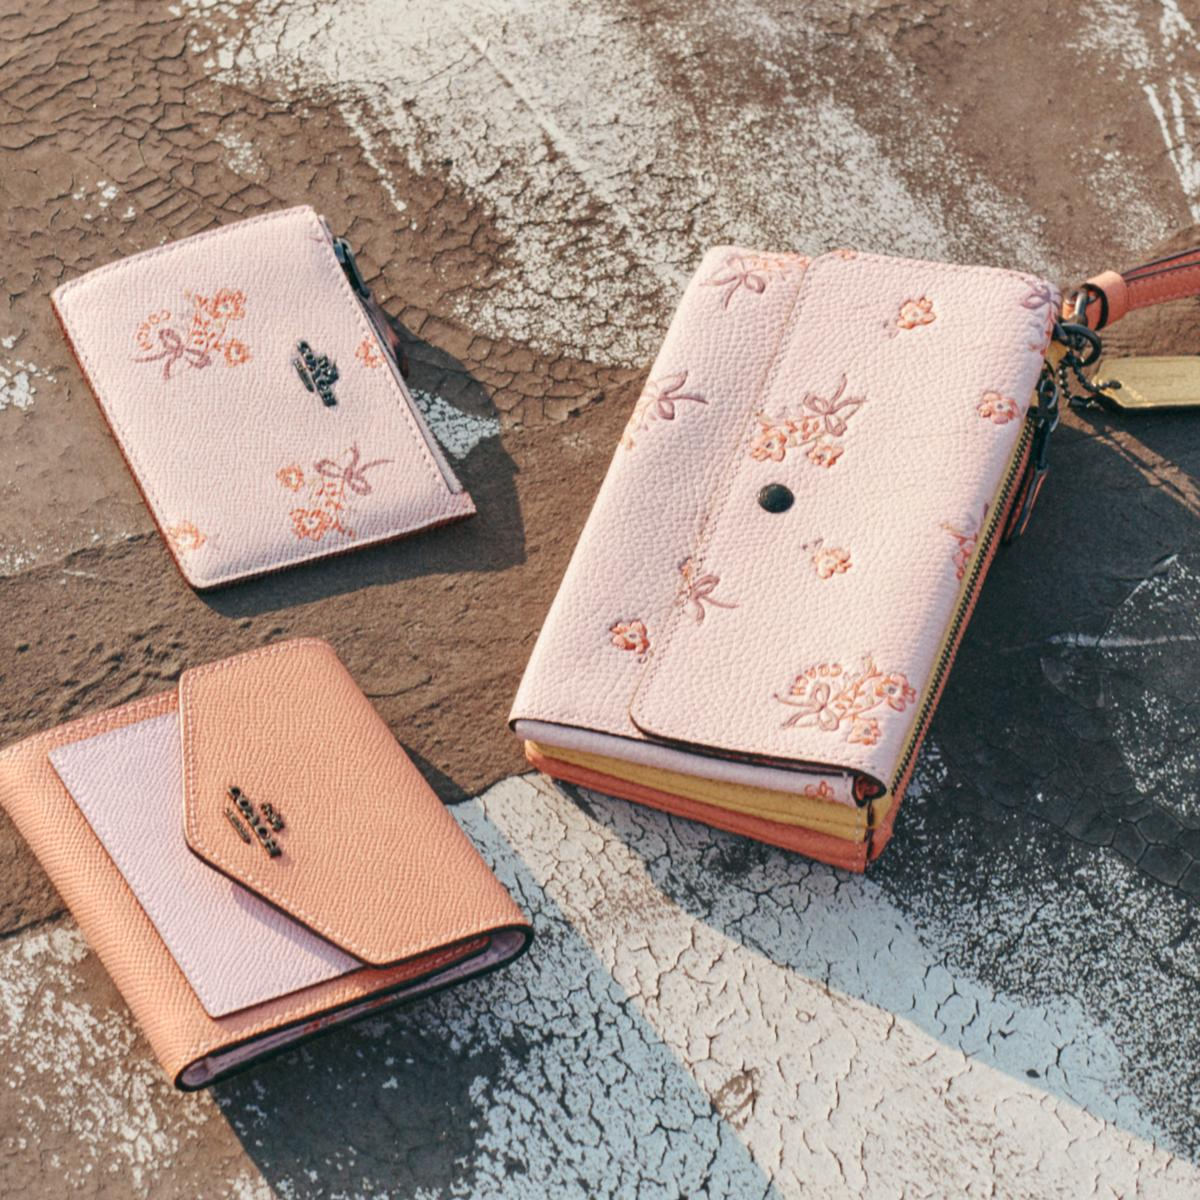 How sweet it is. Candy-colored card cases and wallets available via link in bio. #CoachSS18 https://t.co/54EF2BUc9k